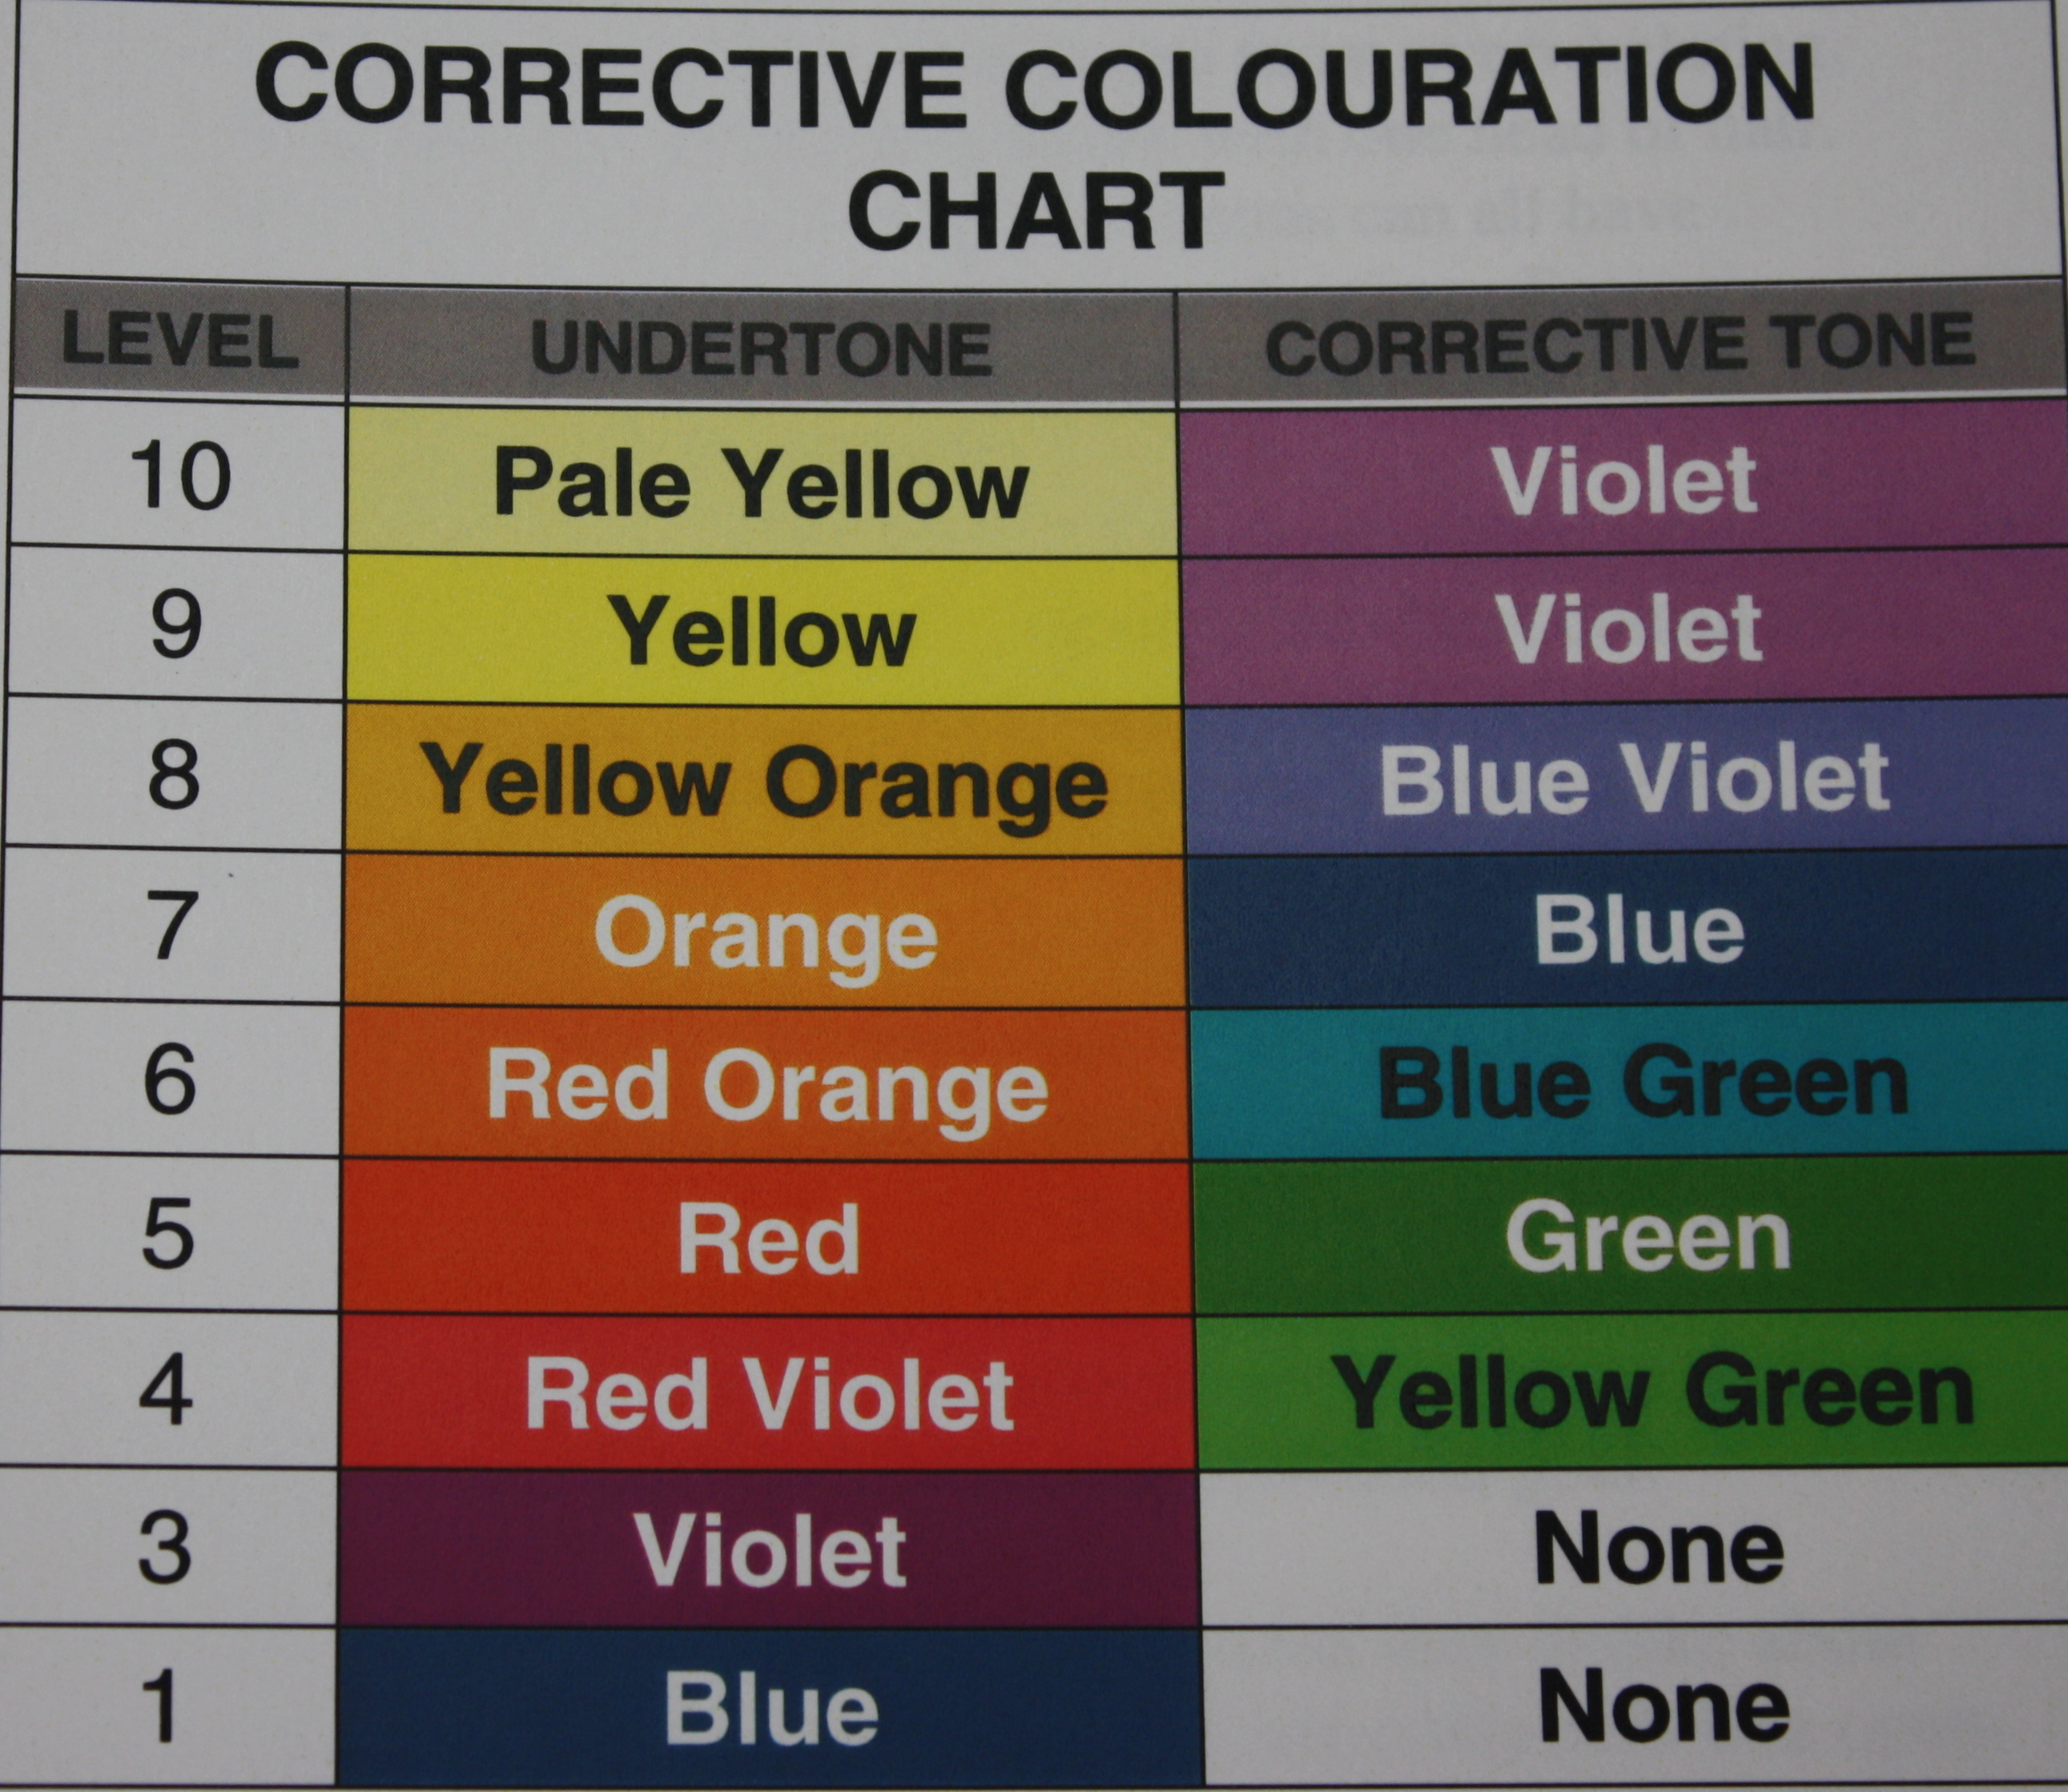 Corrective Hair Colour Charts Back2myroots Page 2